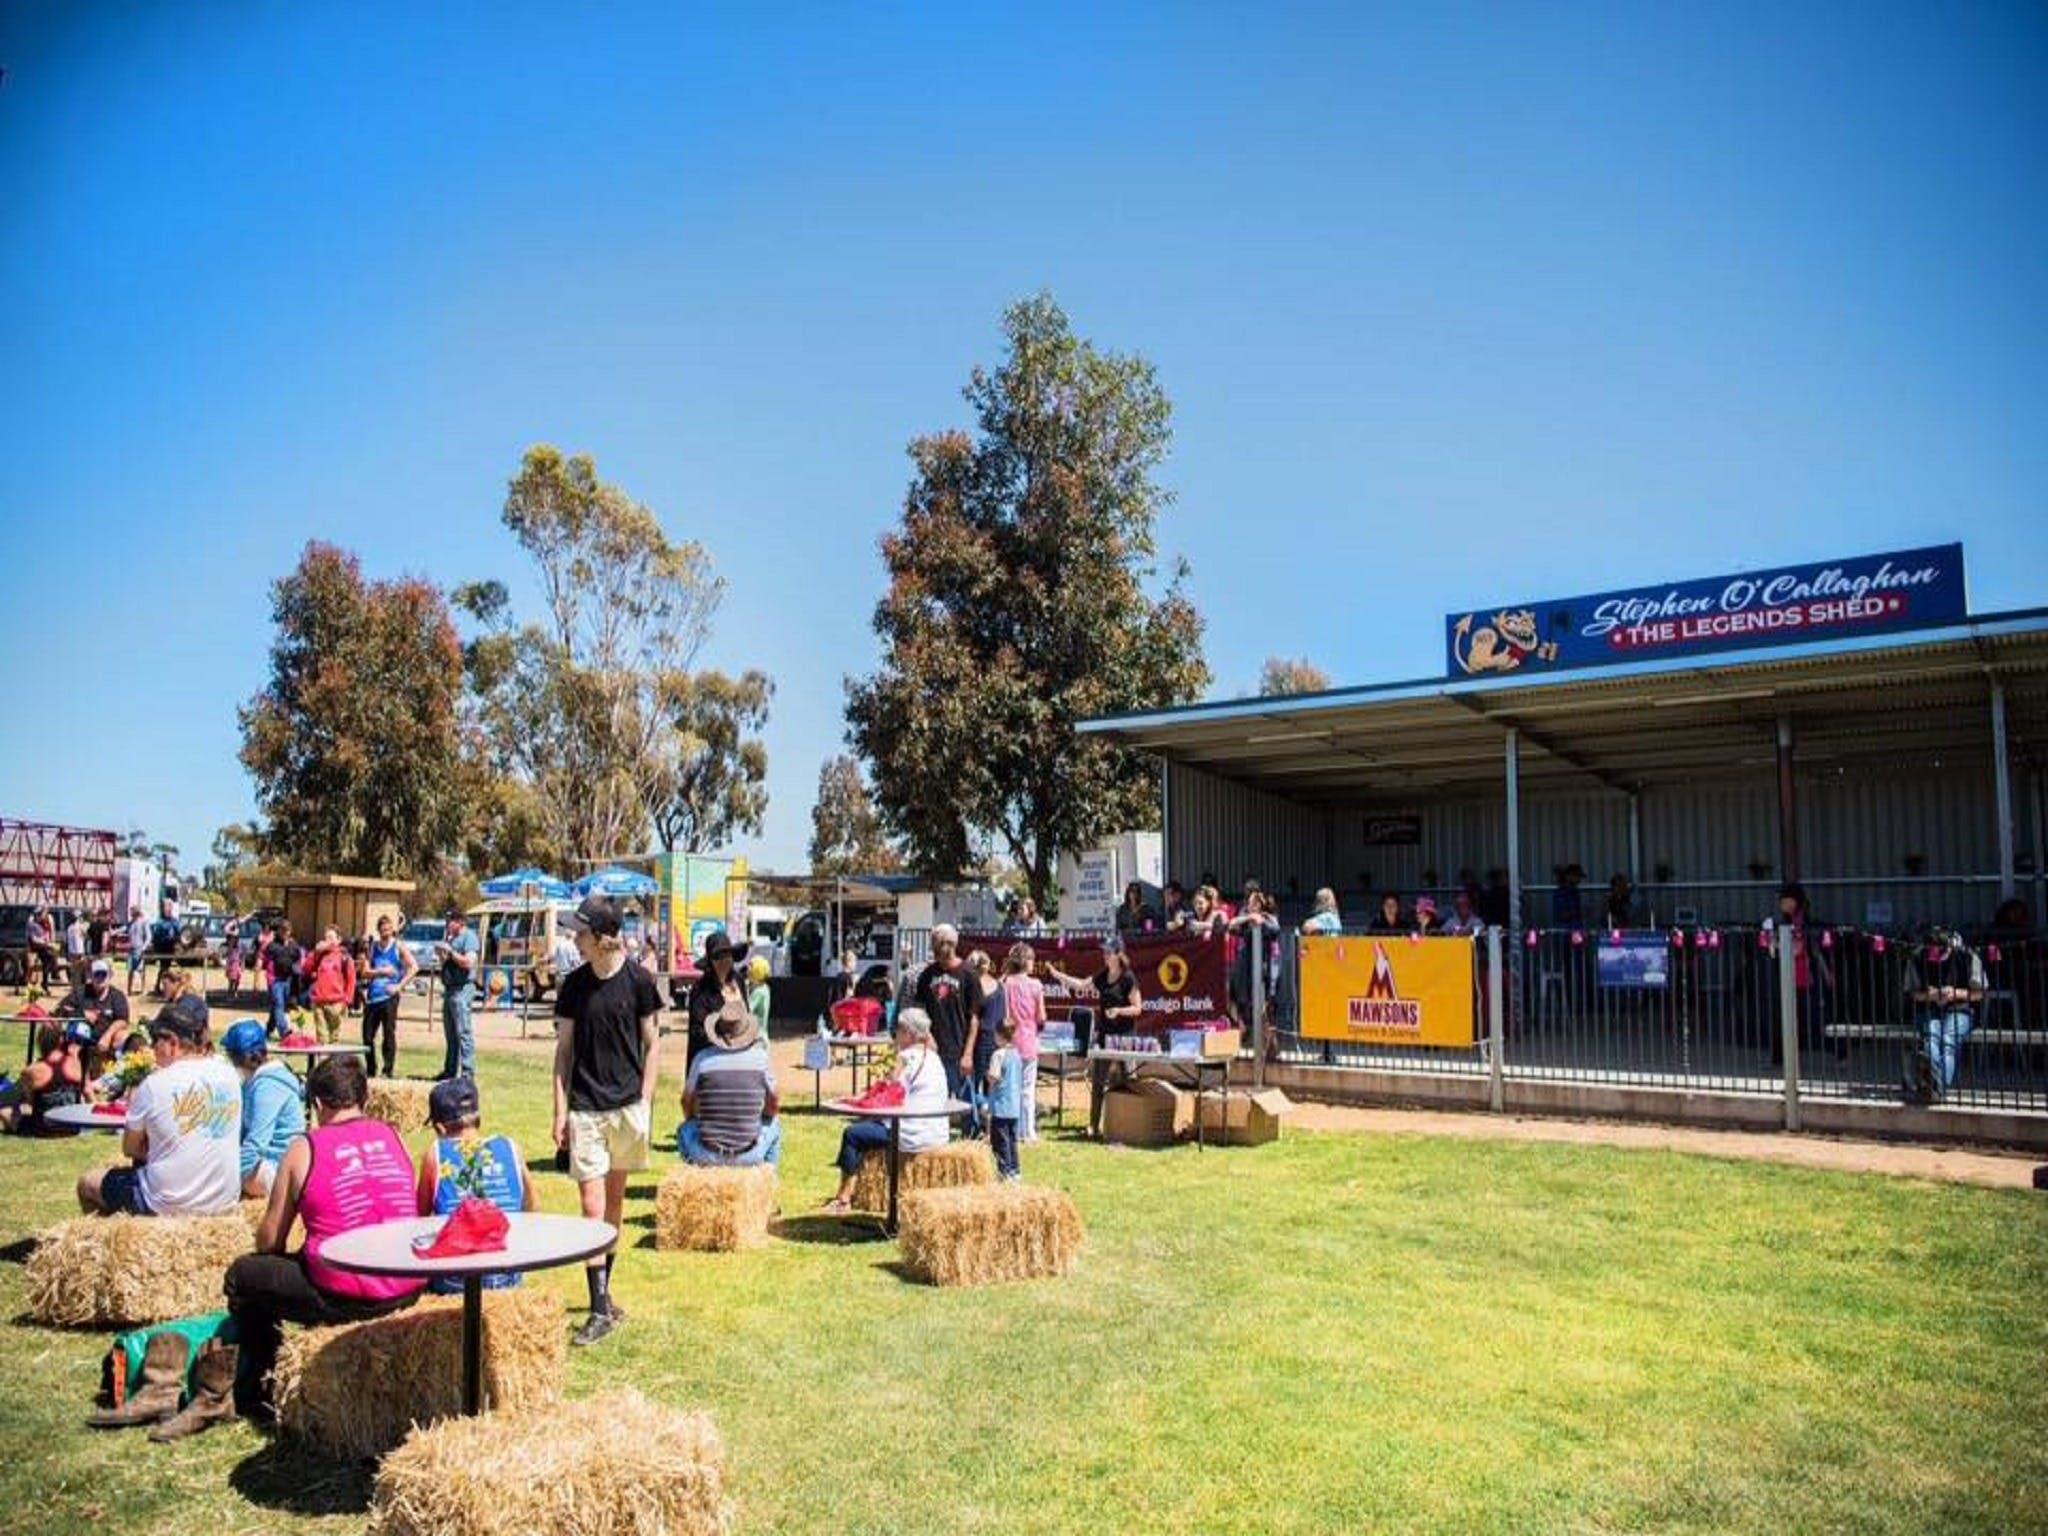 Mathoura Speed Shear and Annual Cancer Fundraiser - Pubs and Clubs